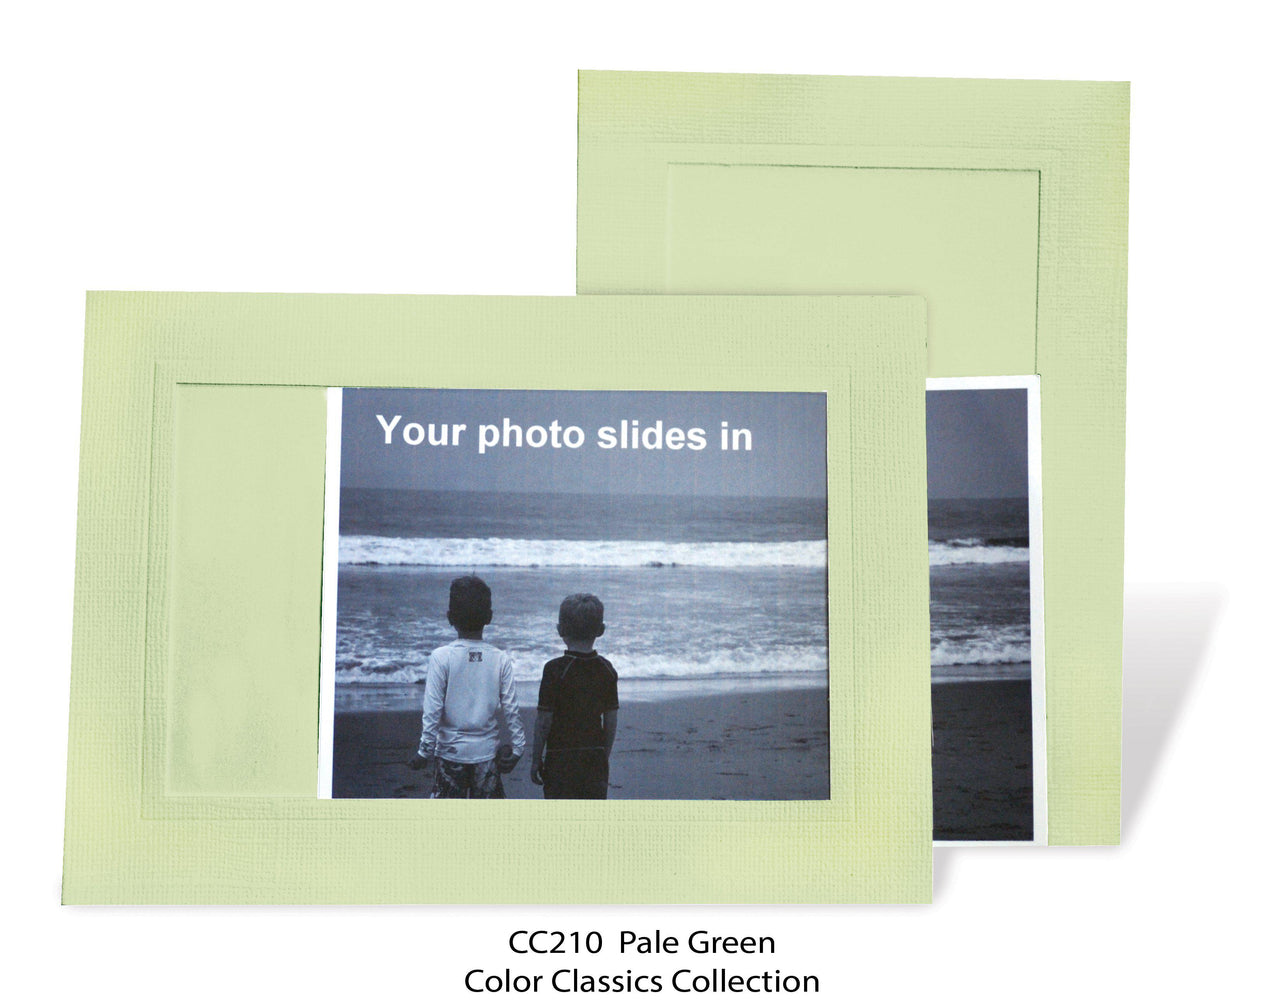 Pale Green Photo Insert Note Cards - Color Classics collection (color #CC210)